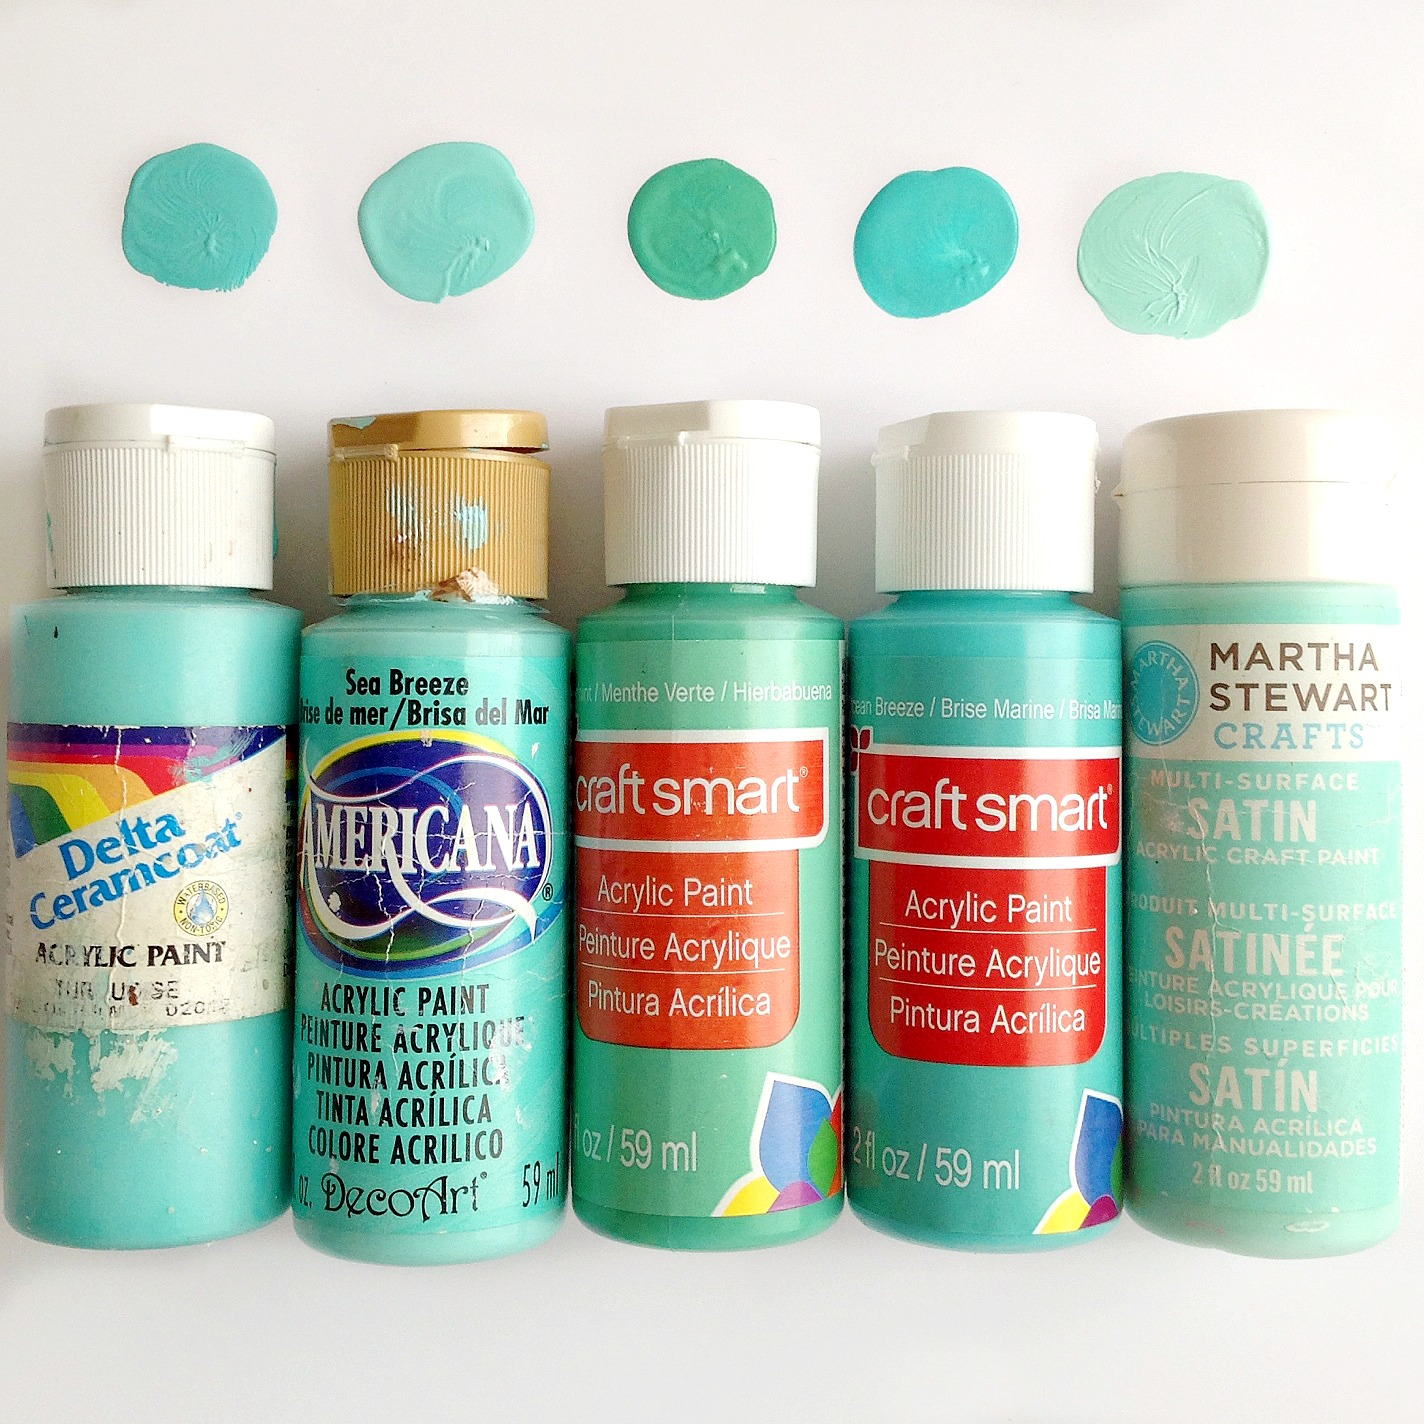 Paint Colors And Brands: The Everyday Is A Holiday Color Palette (colors, Brands